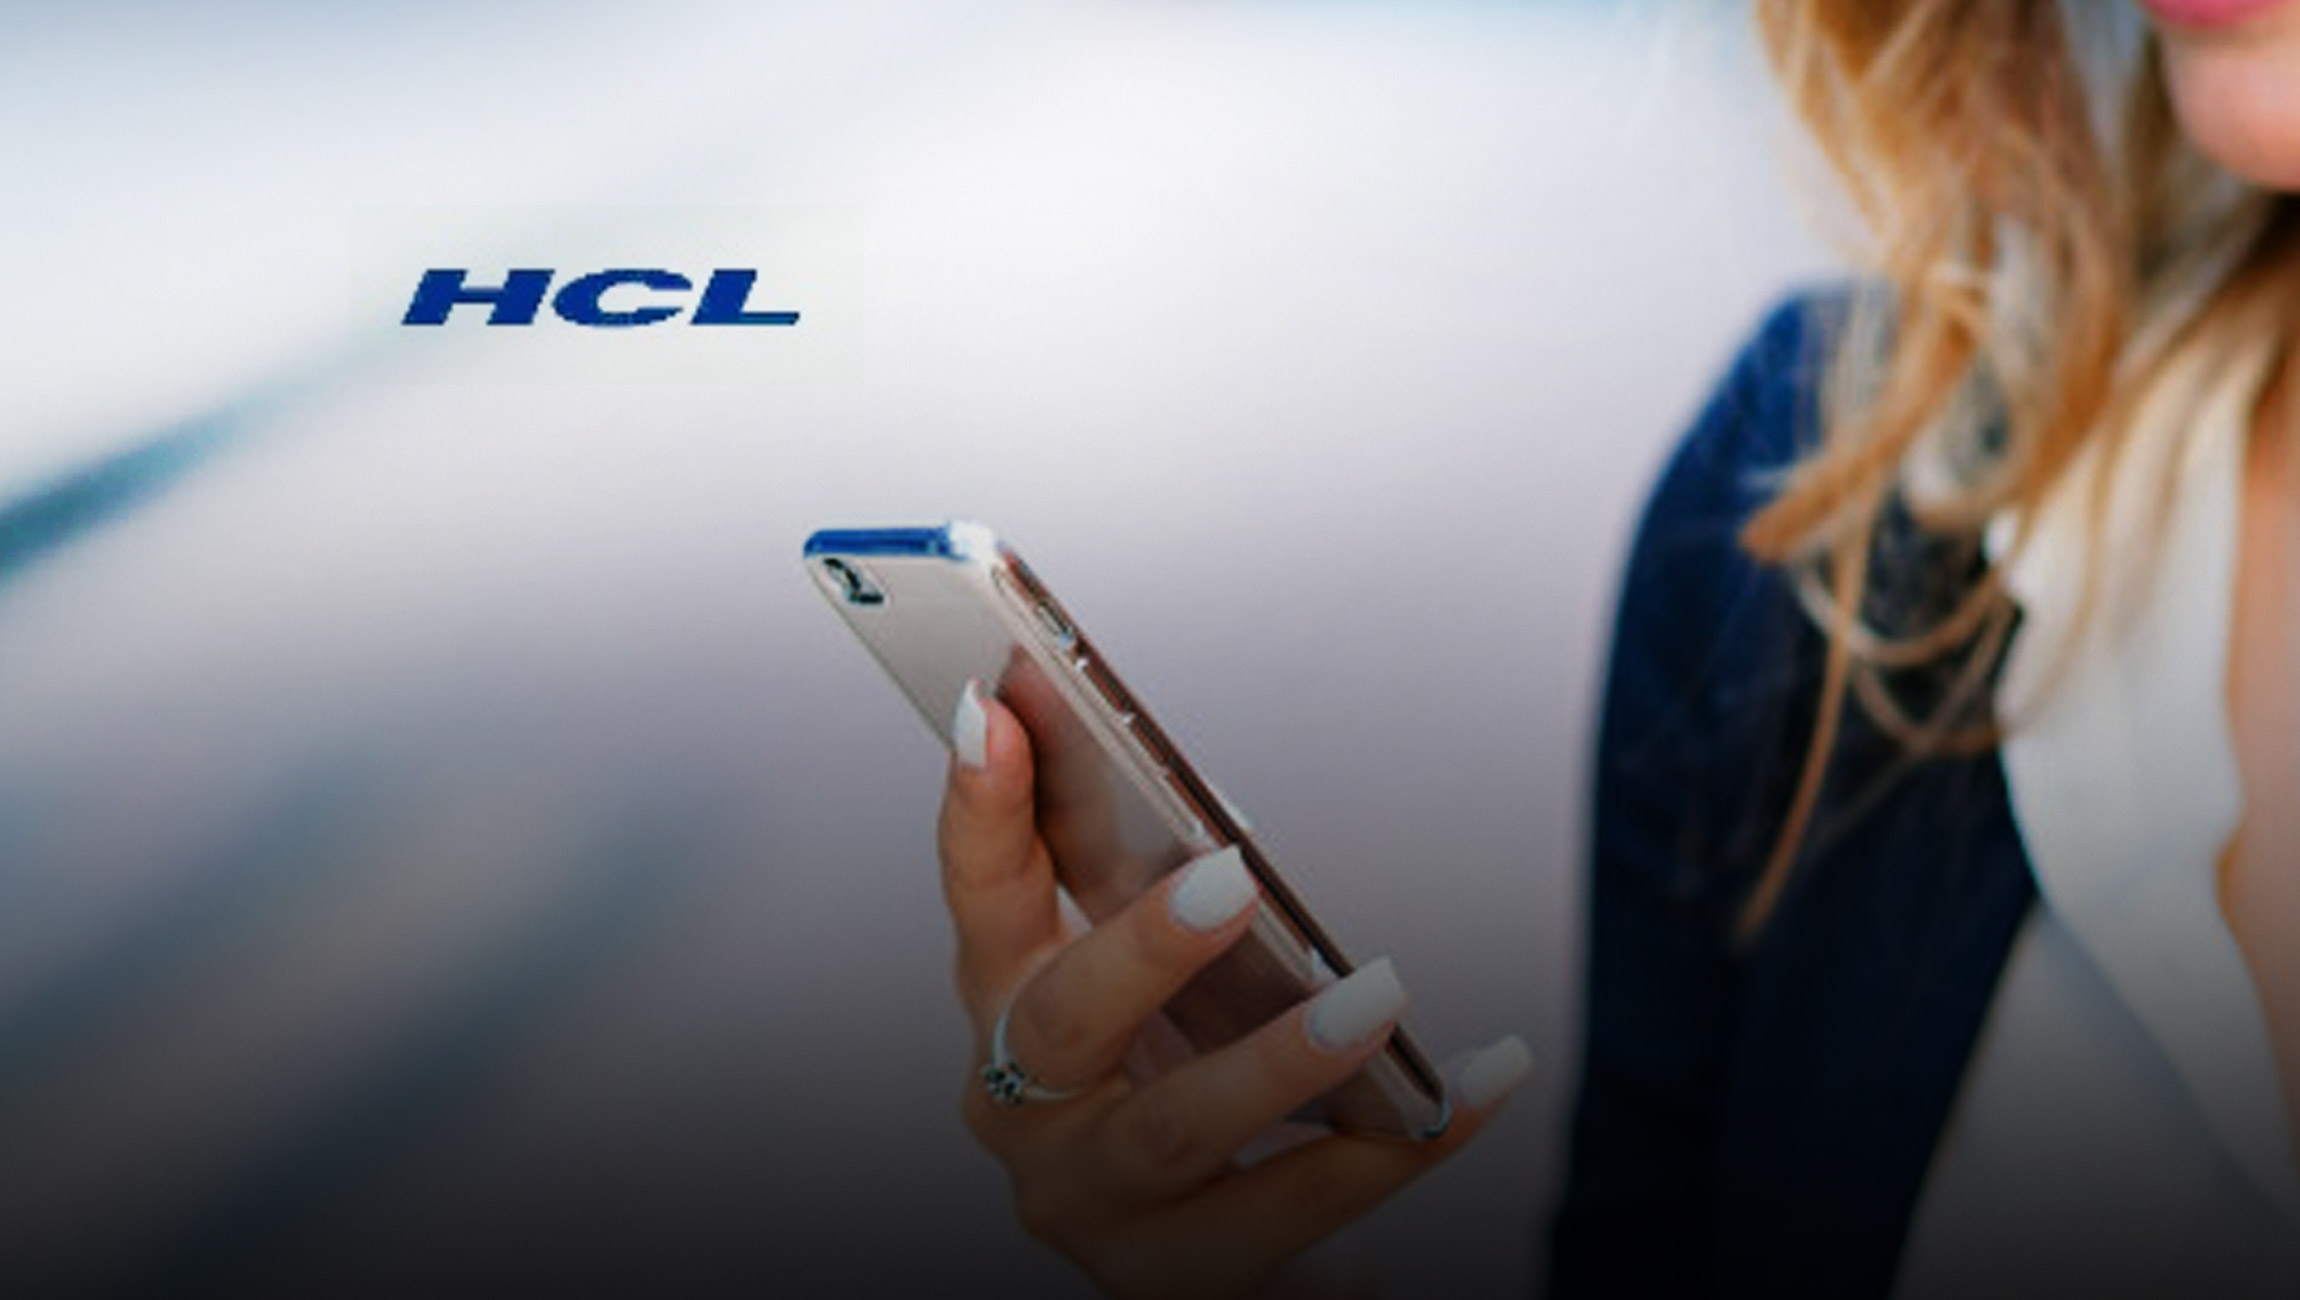 HCL Technologies Announces Intent to Acquire Leading Australian IT Solutions Company, DWS Limited